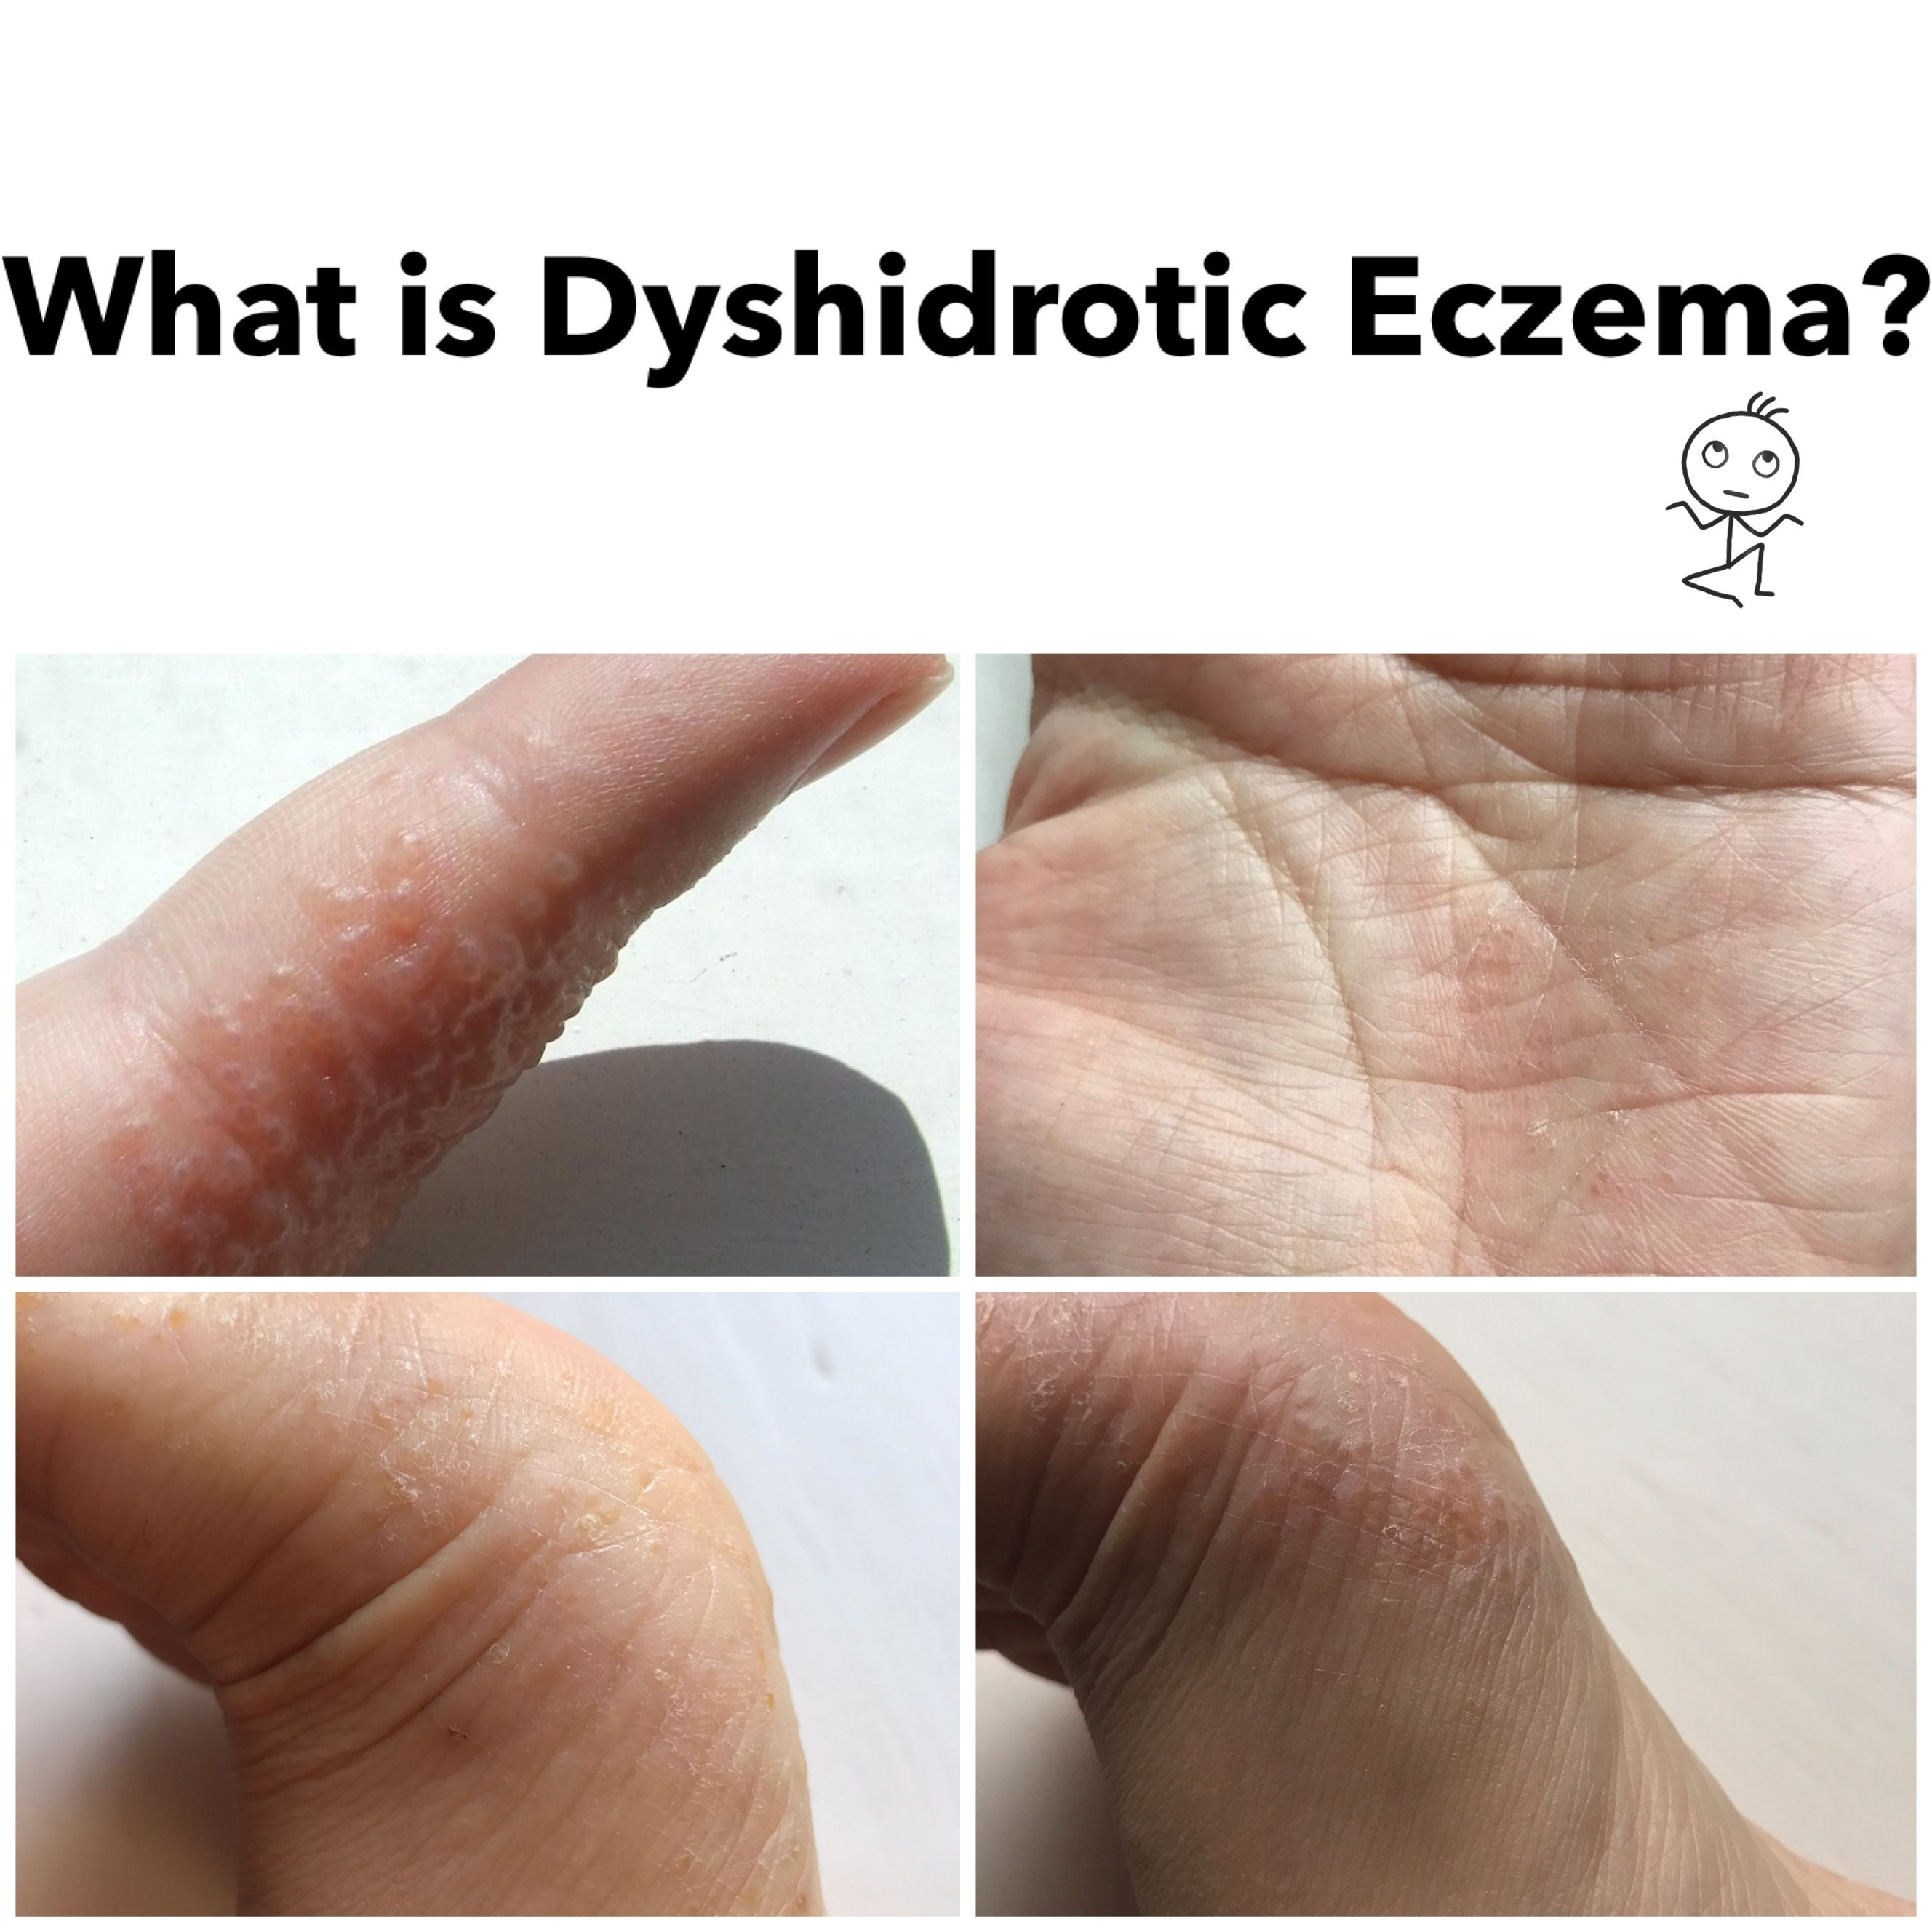 How is dyshidrotic eczema diagnosed and treated